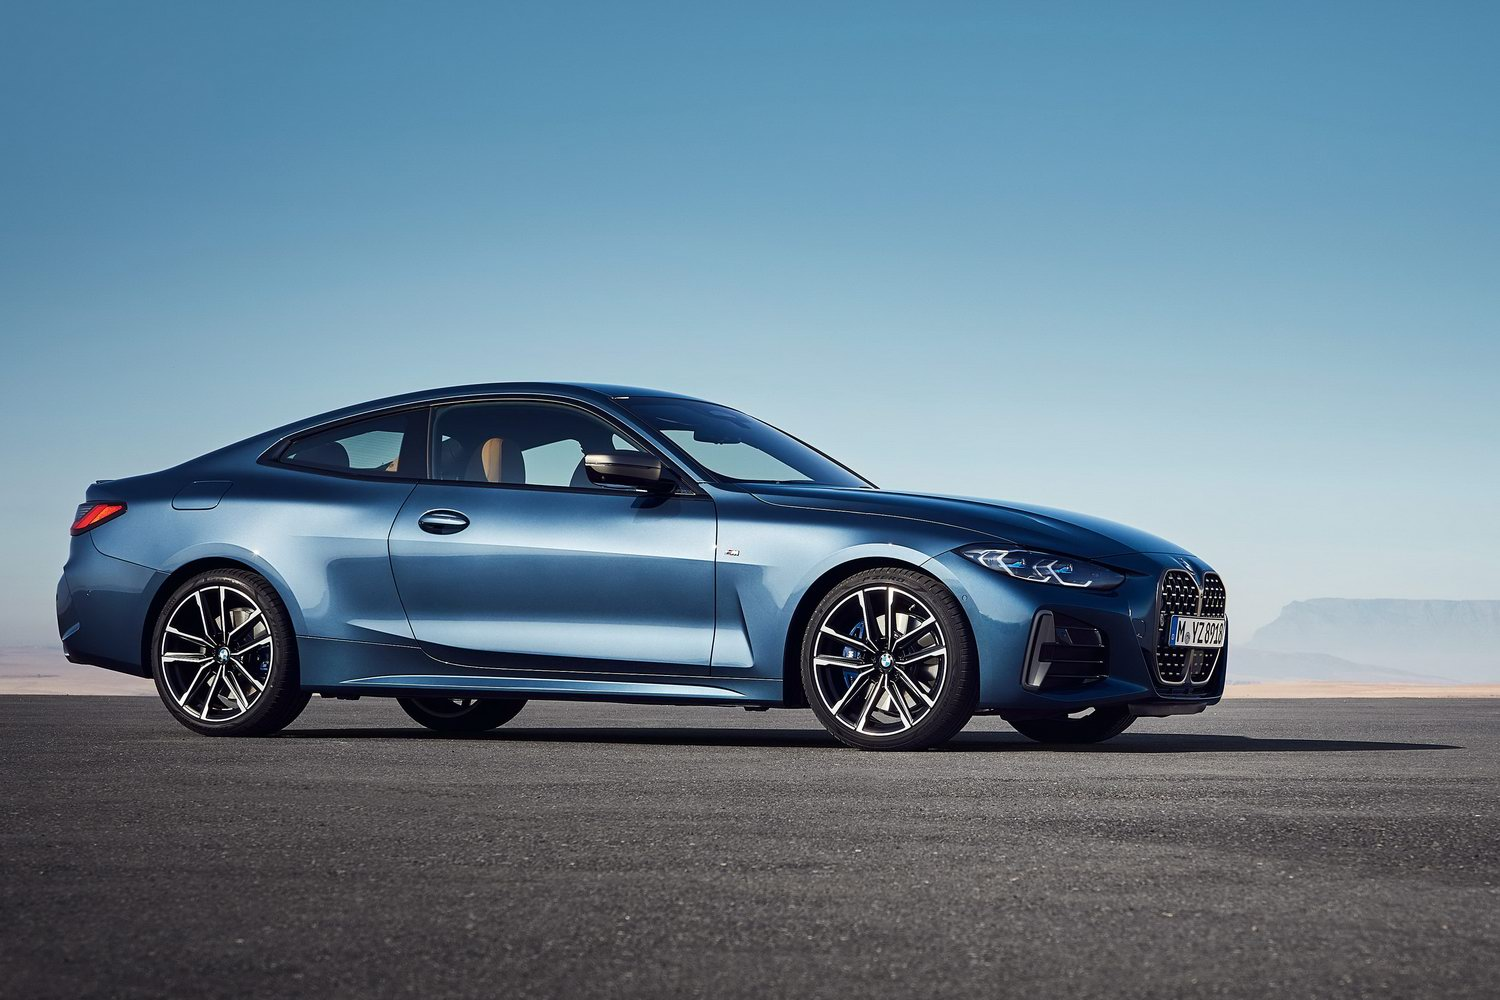 Car News | Daring new BMW 4 Series Coupe outed | CompleteCar.ie